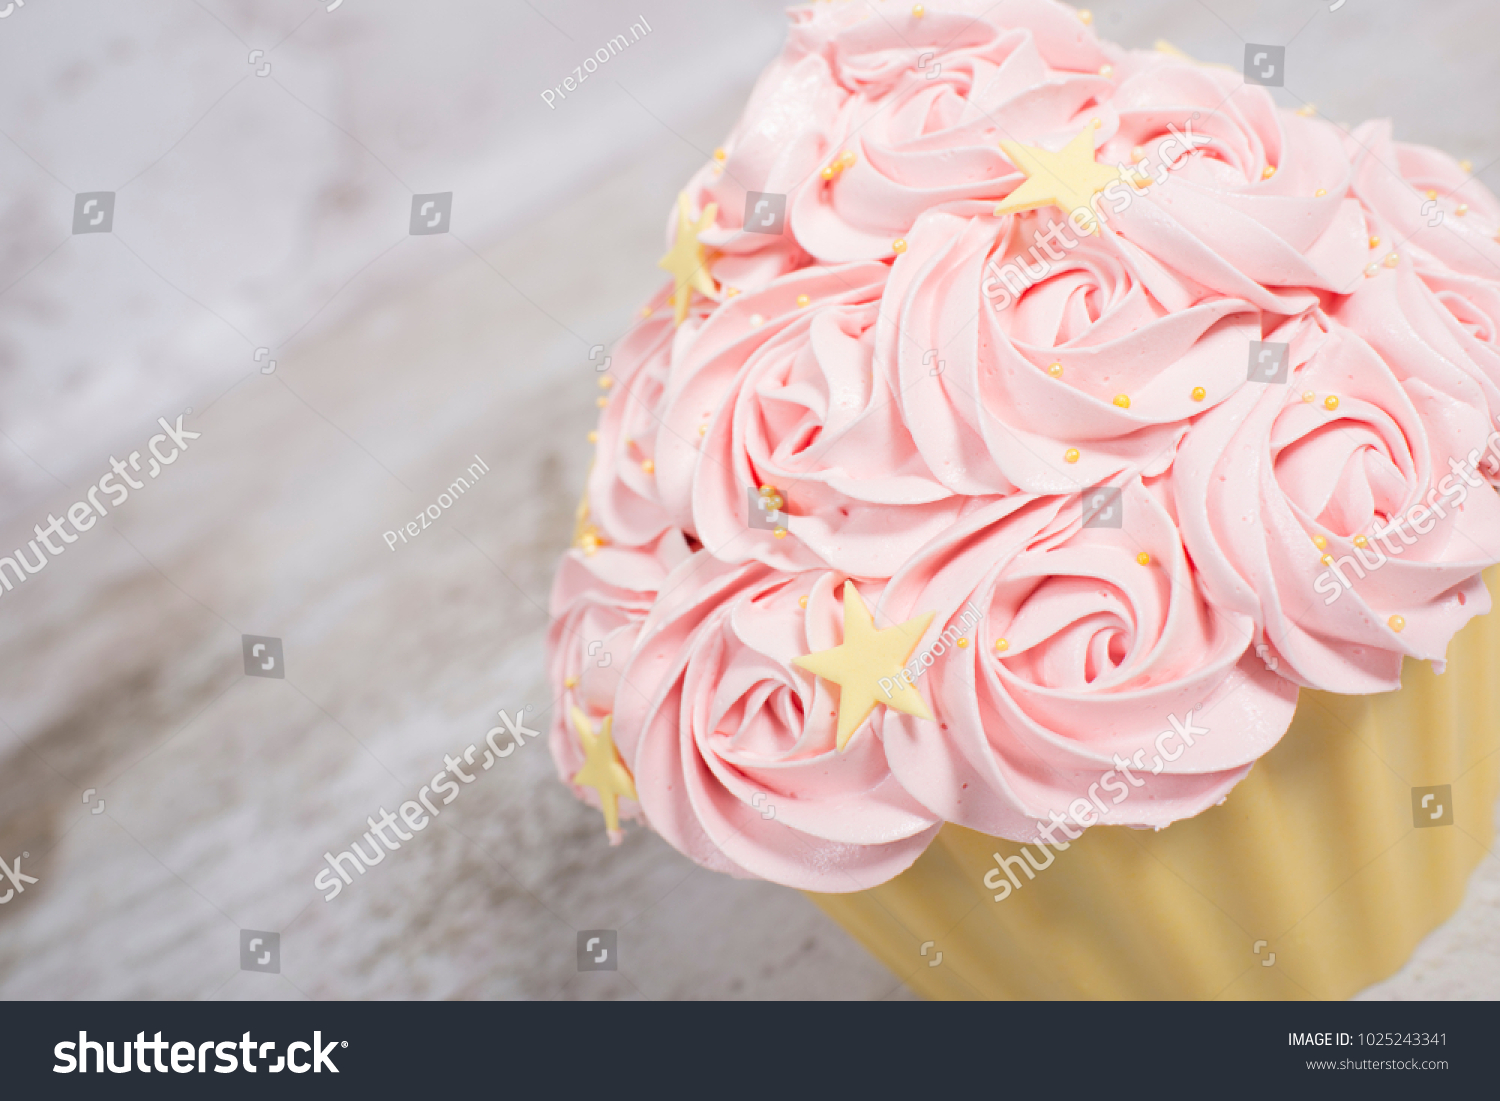 Gorgeous cupcake shaped birthday cake roses stock photo image gorgeous cupcake shaped birthday cake with roses as icing izmirmasajfo